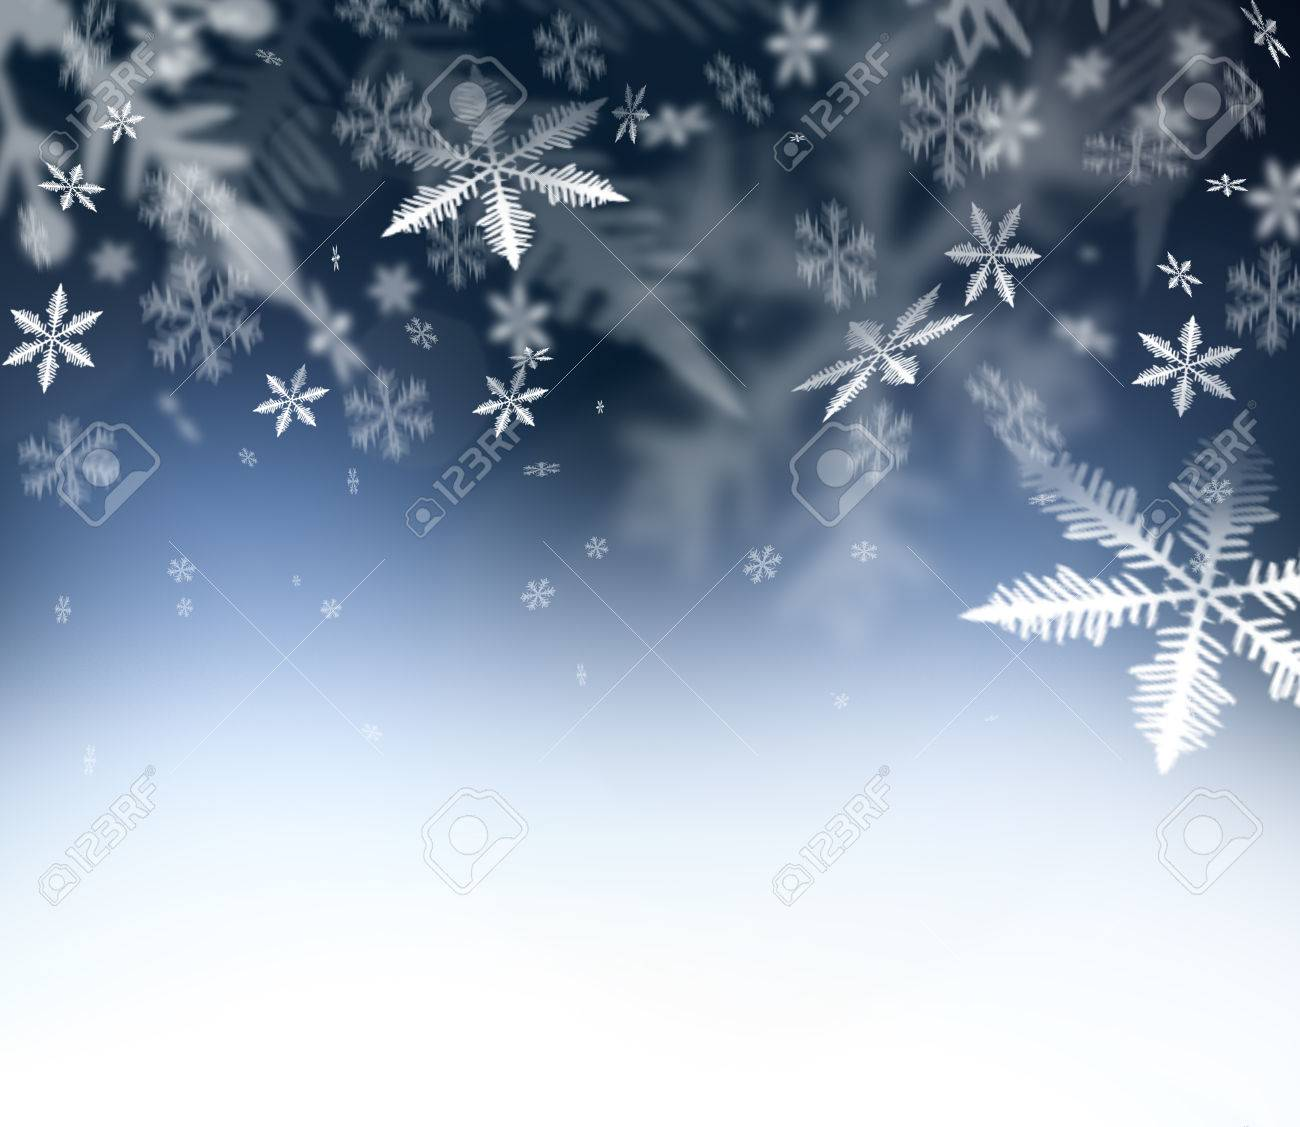 Christmas Time.Christmas Time Christmas Abstract Background Falling Snowflakes